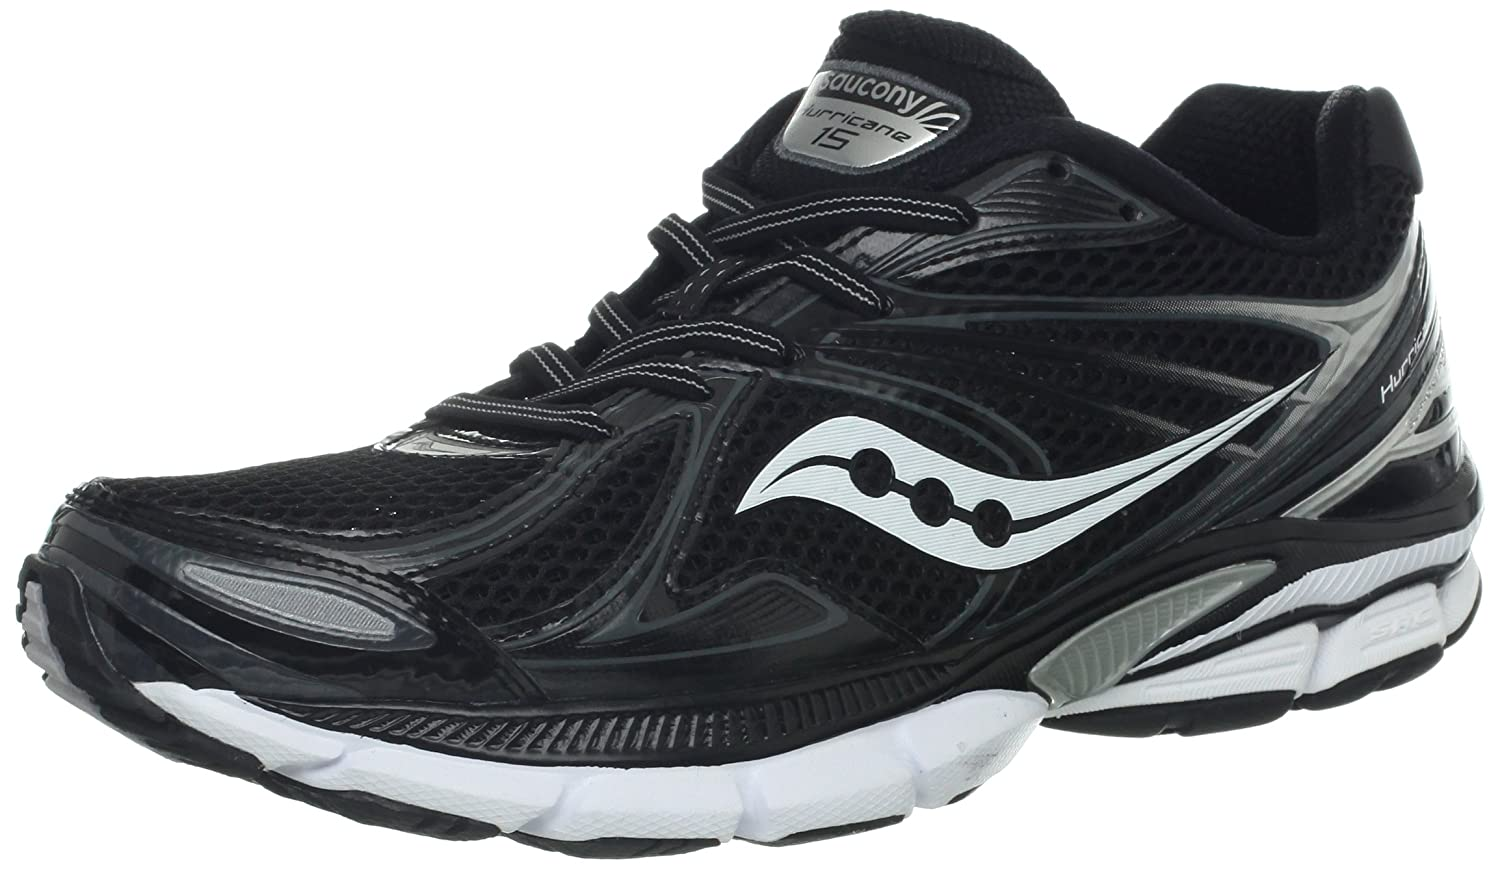 762f0a48 Saucony Men's Hurricane 15 Running Shoe,Black/White,12.5 M US: Amazon.ca:  Shoes & Handbags